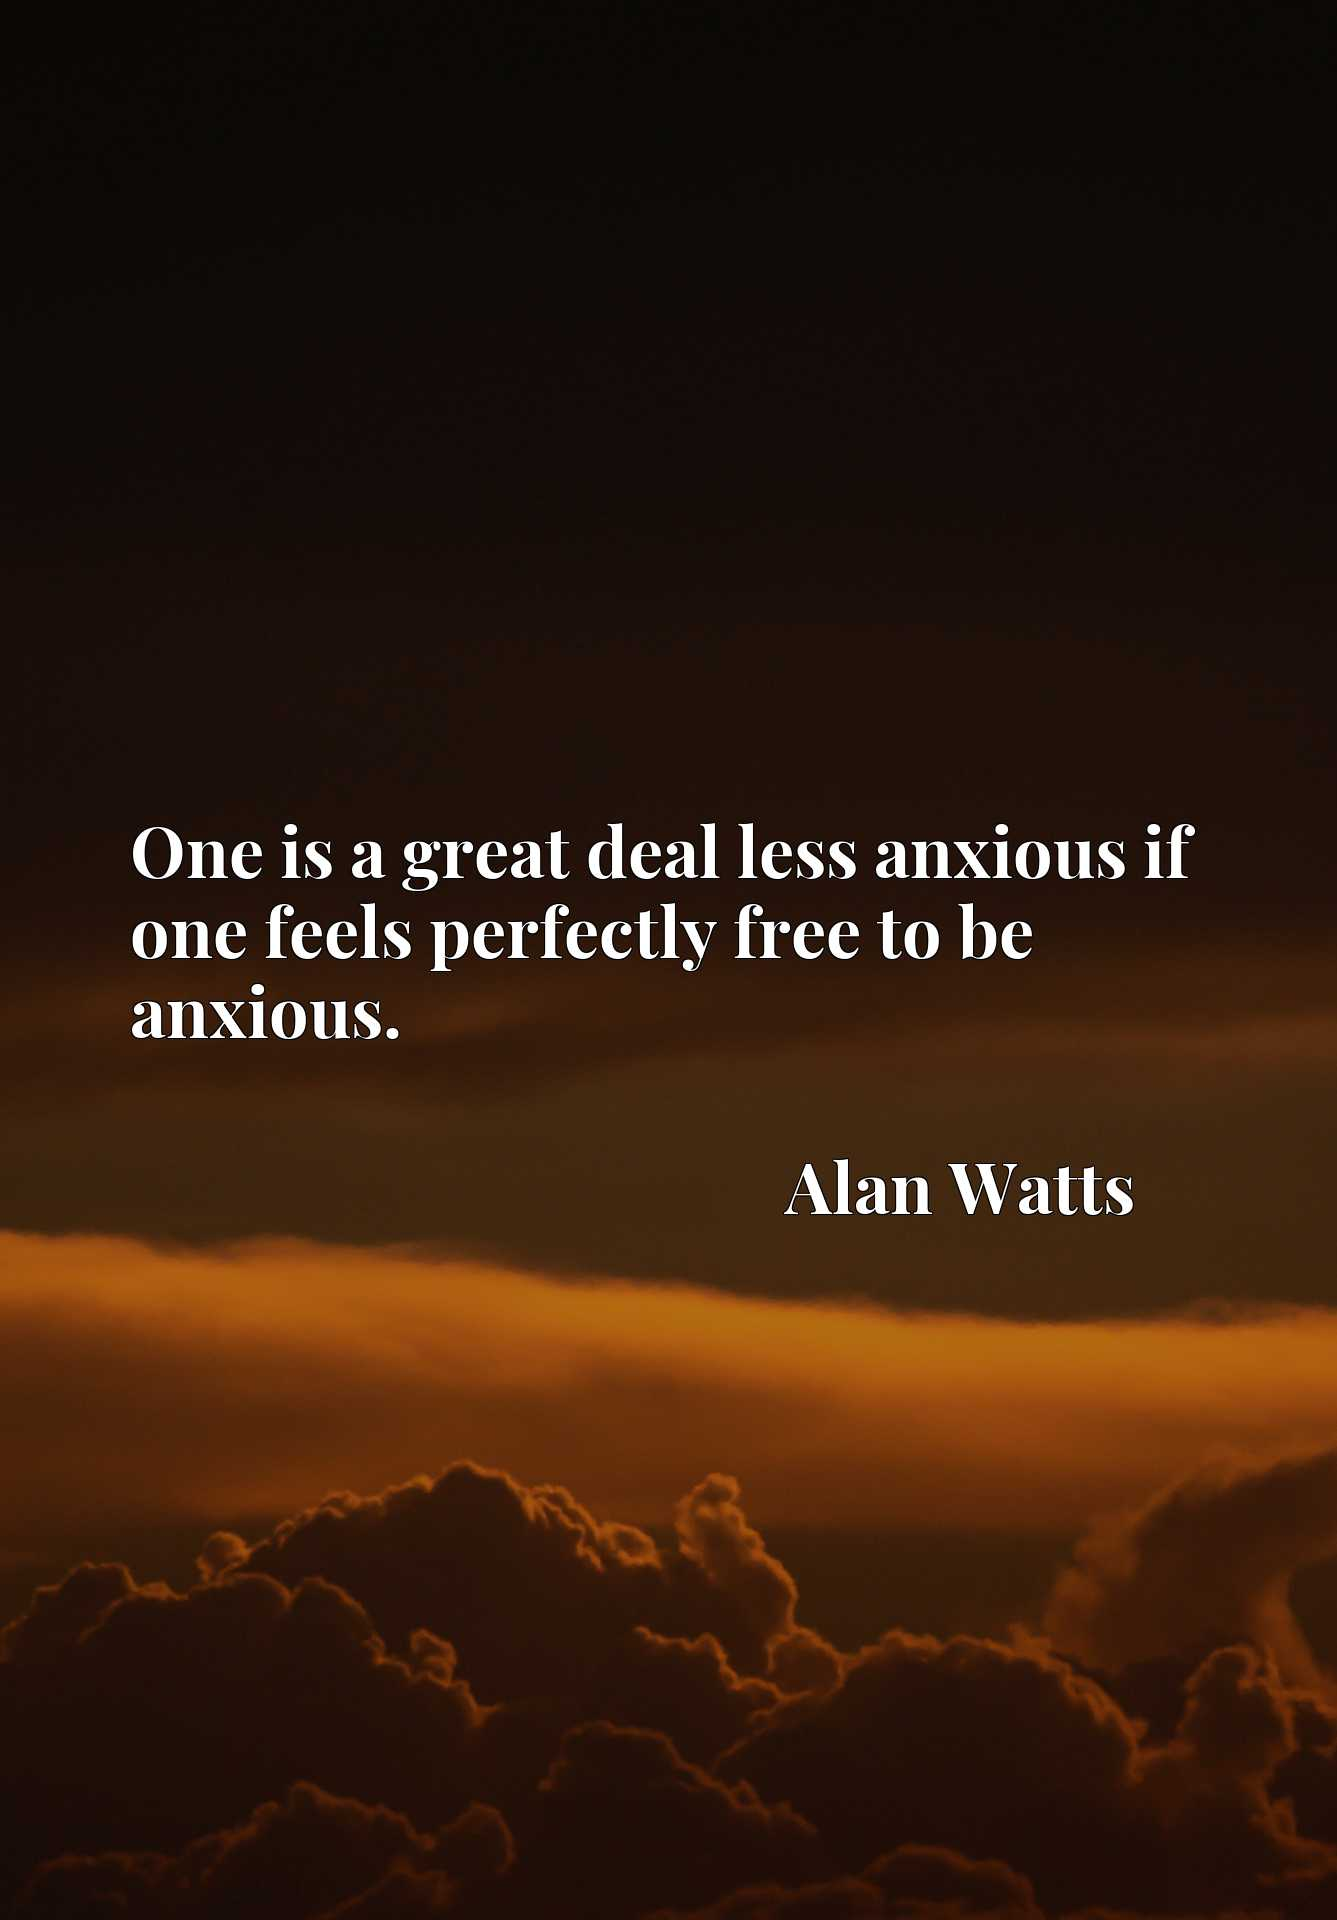 One is a great deal less anxious if one feels perfectly free to be anxious.